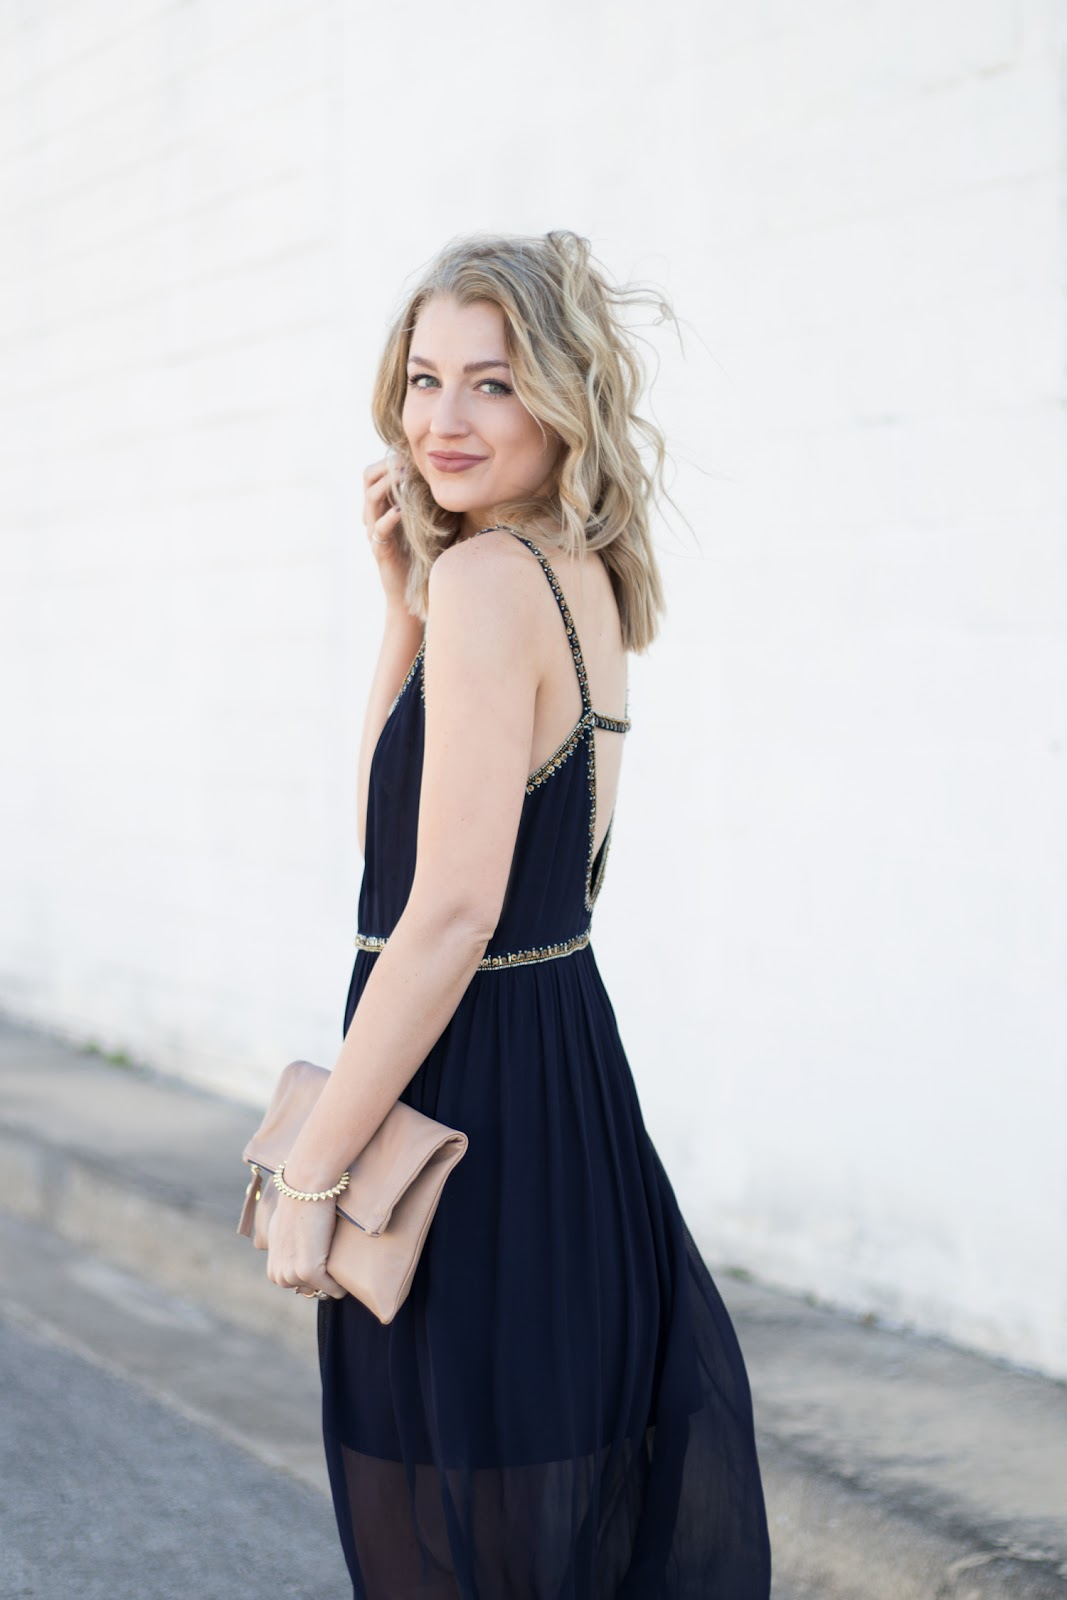 Strappy navy dress